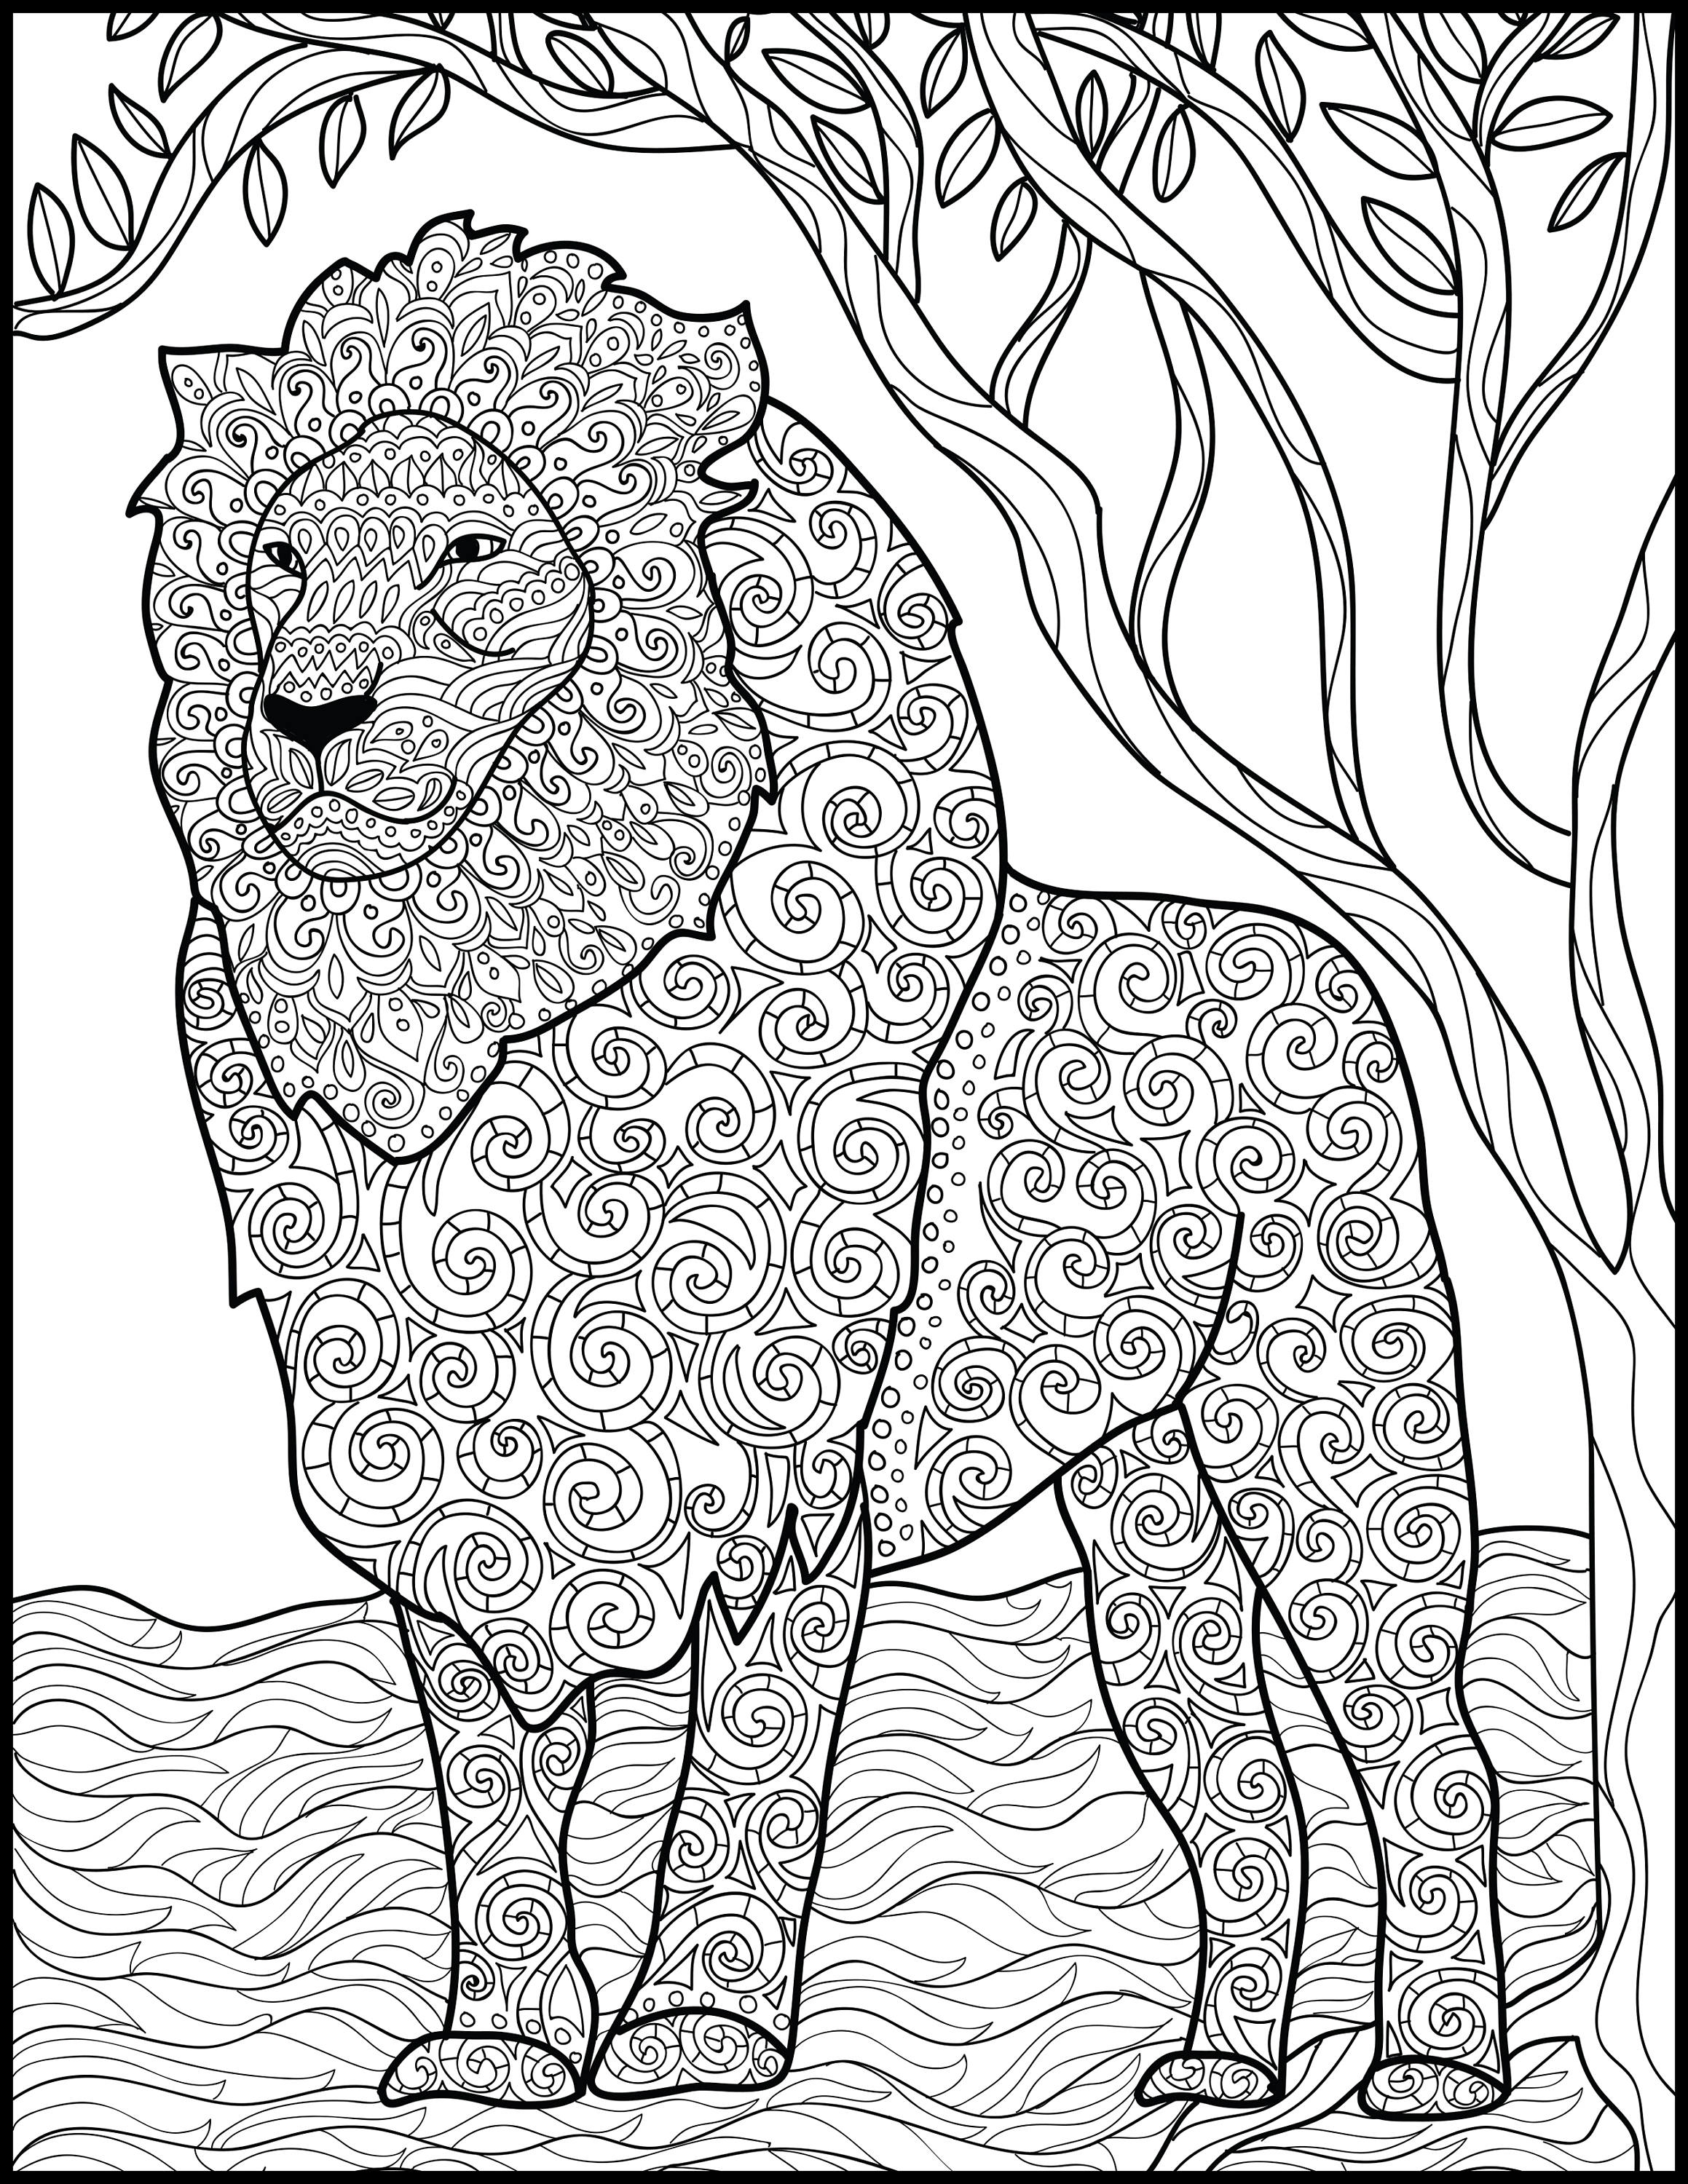 intricate coloring pages for kids free printable abstract coloring pages for adults coloring kids pages for intricate